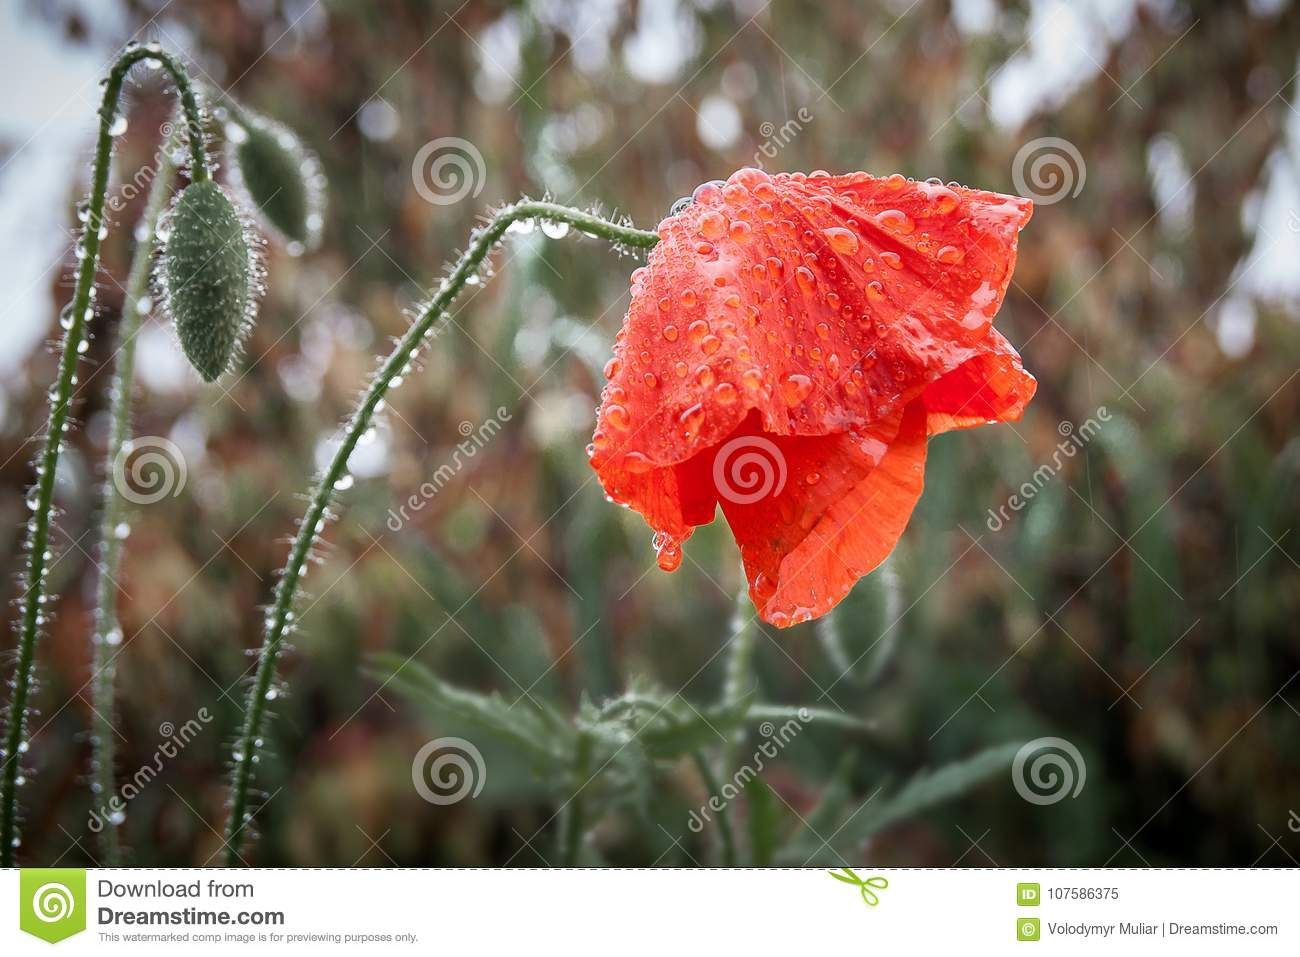 Wet from the rain poppy flower bowed the head symbolizes sadnes wet from the rain poppy flower bowed the head symbolizes sadnes mightylinksfo